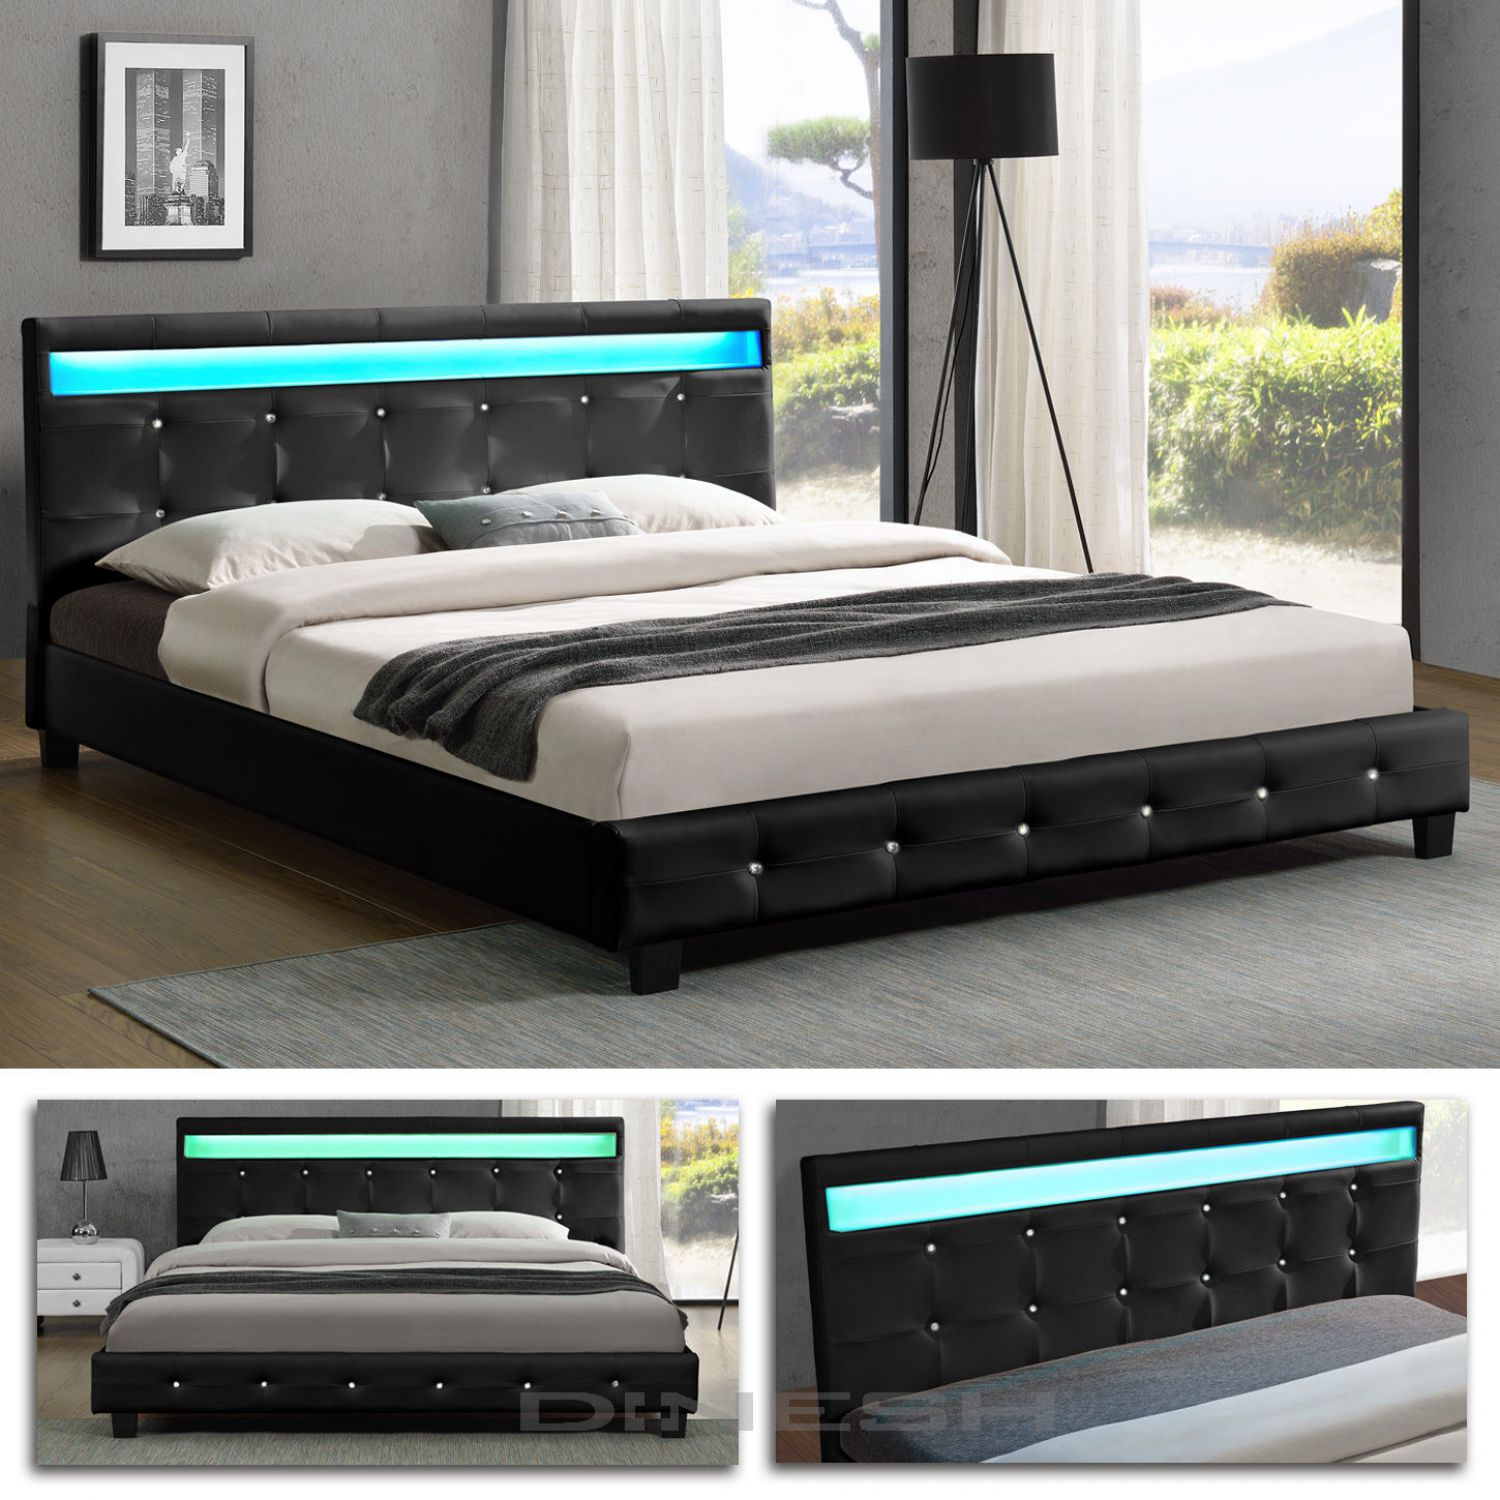 denver schwarz led doppelbett polsterbett bettgestell bett. Black Bedroom Furniture Sets. Home Design Ideas